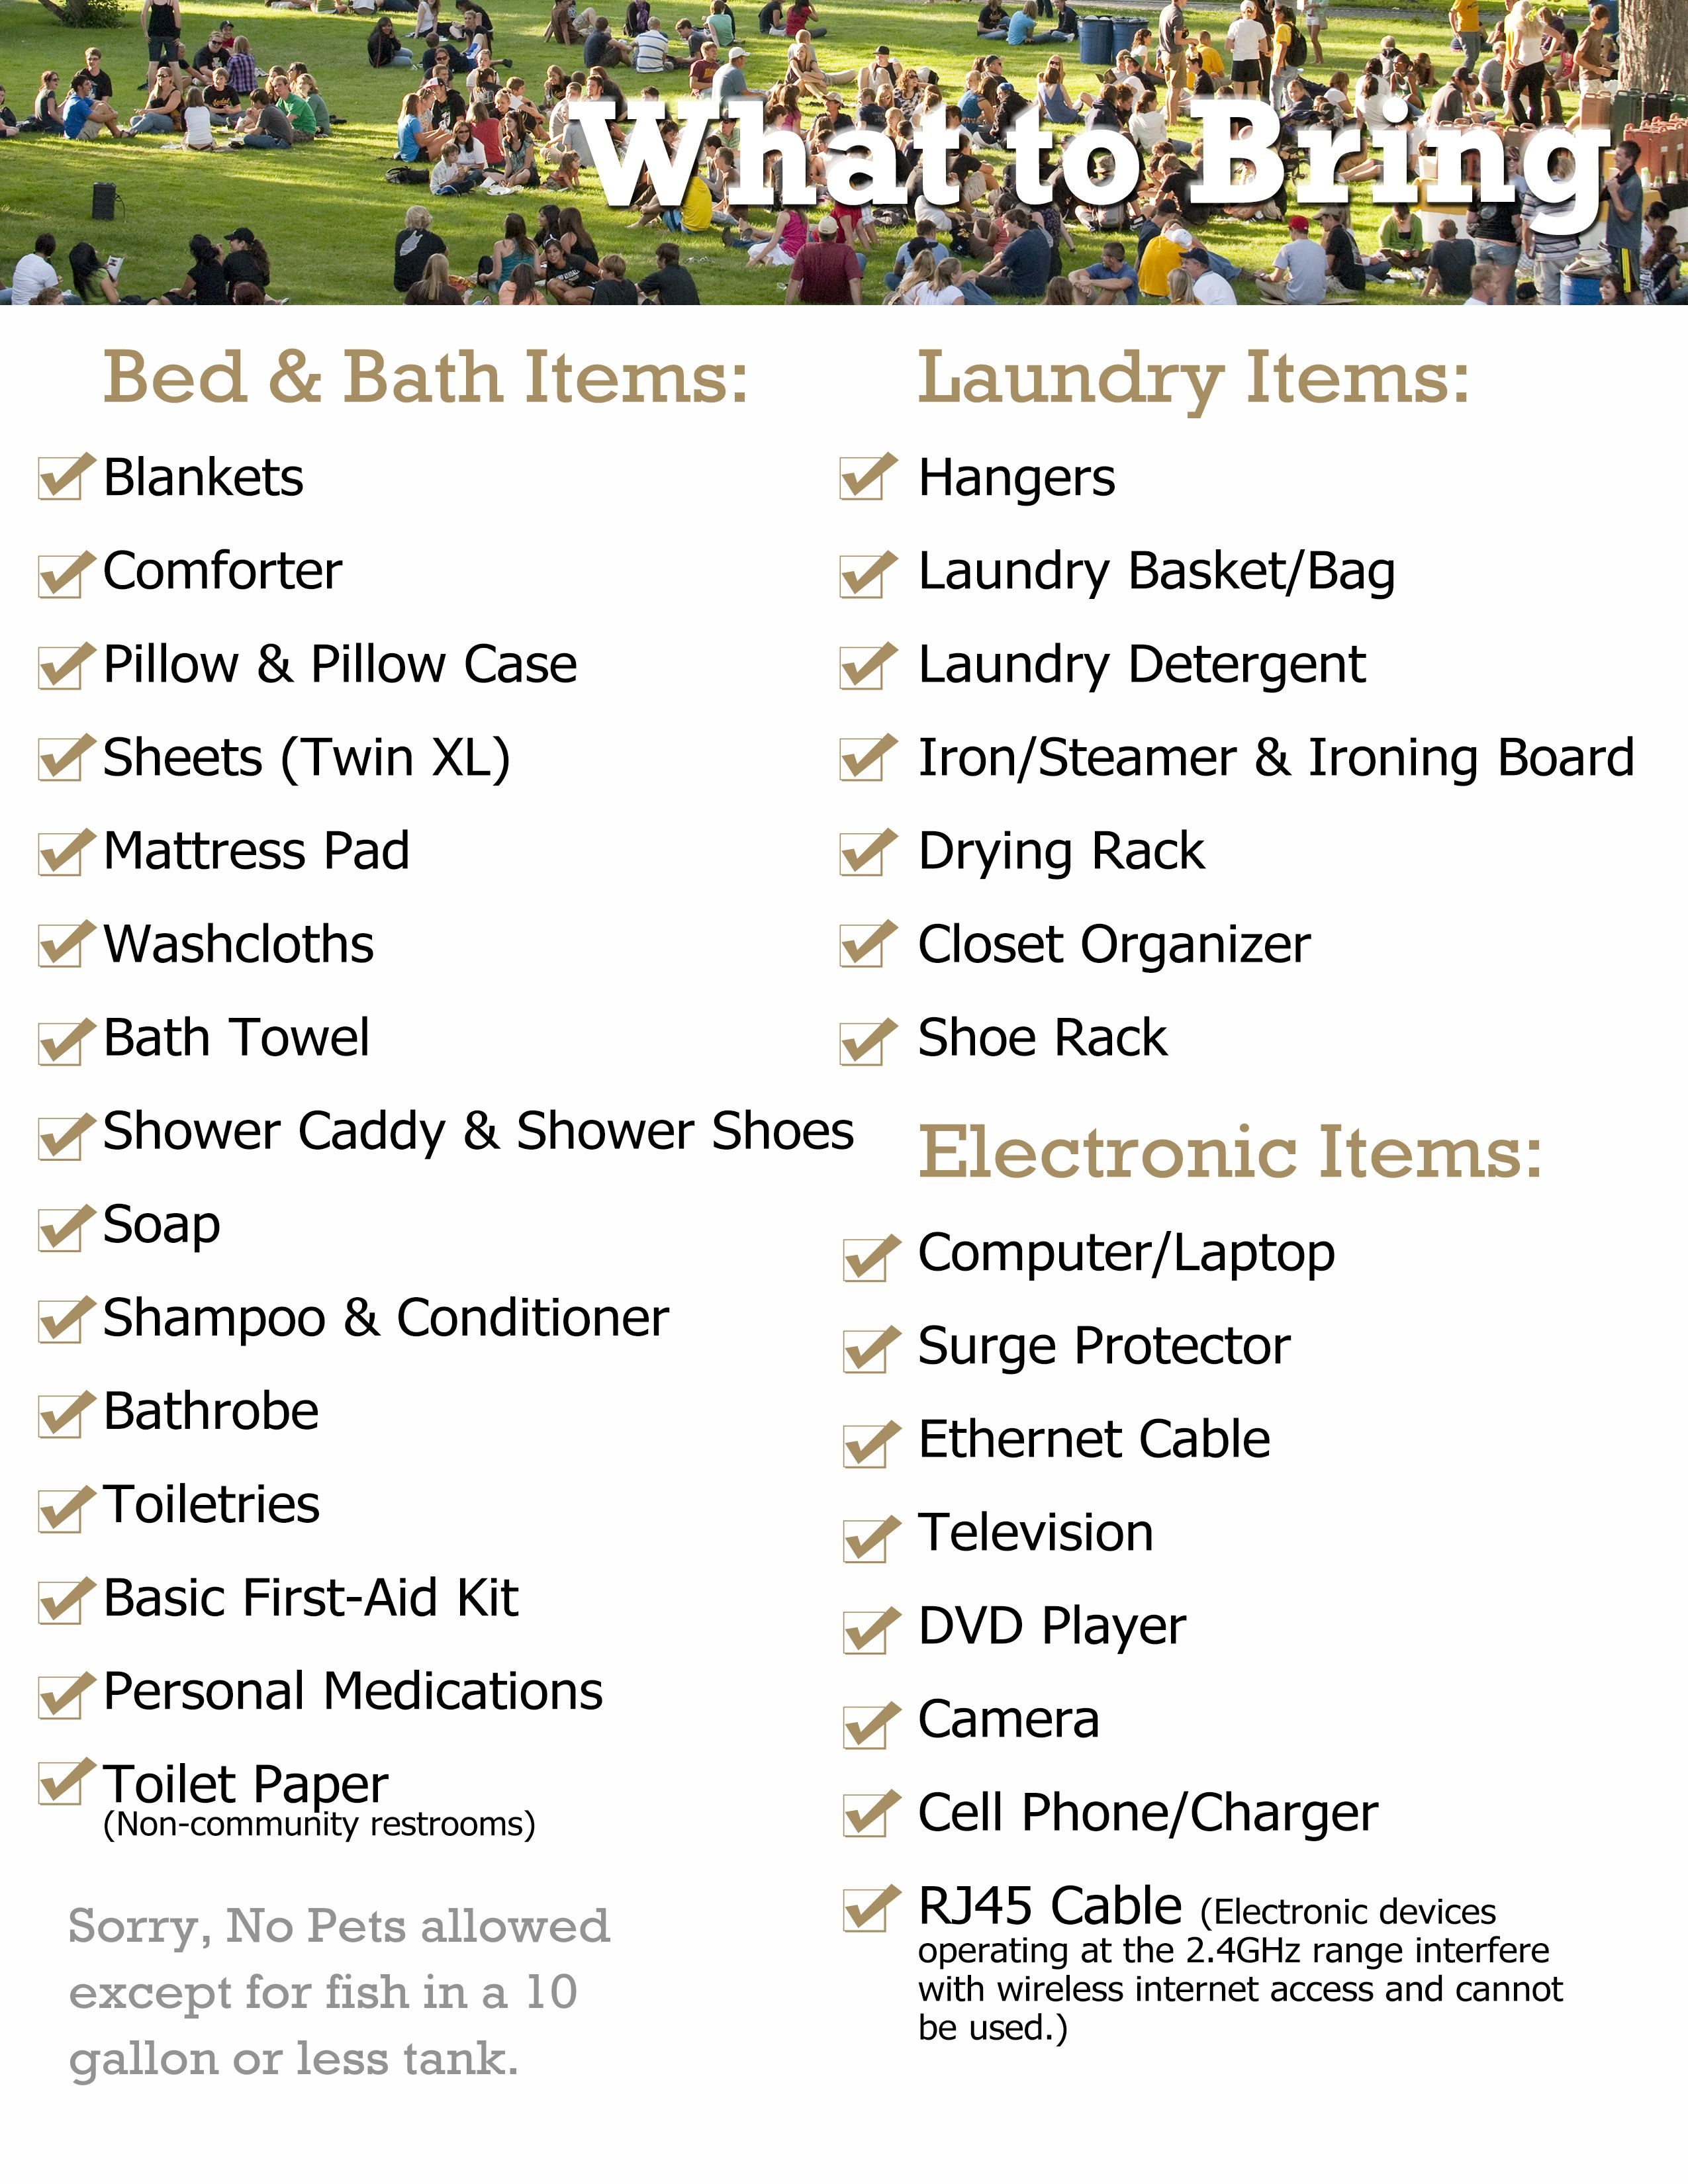 What To Bring List Bed Amp Bath Items Laundry Items And